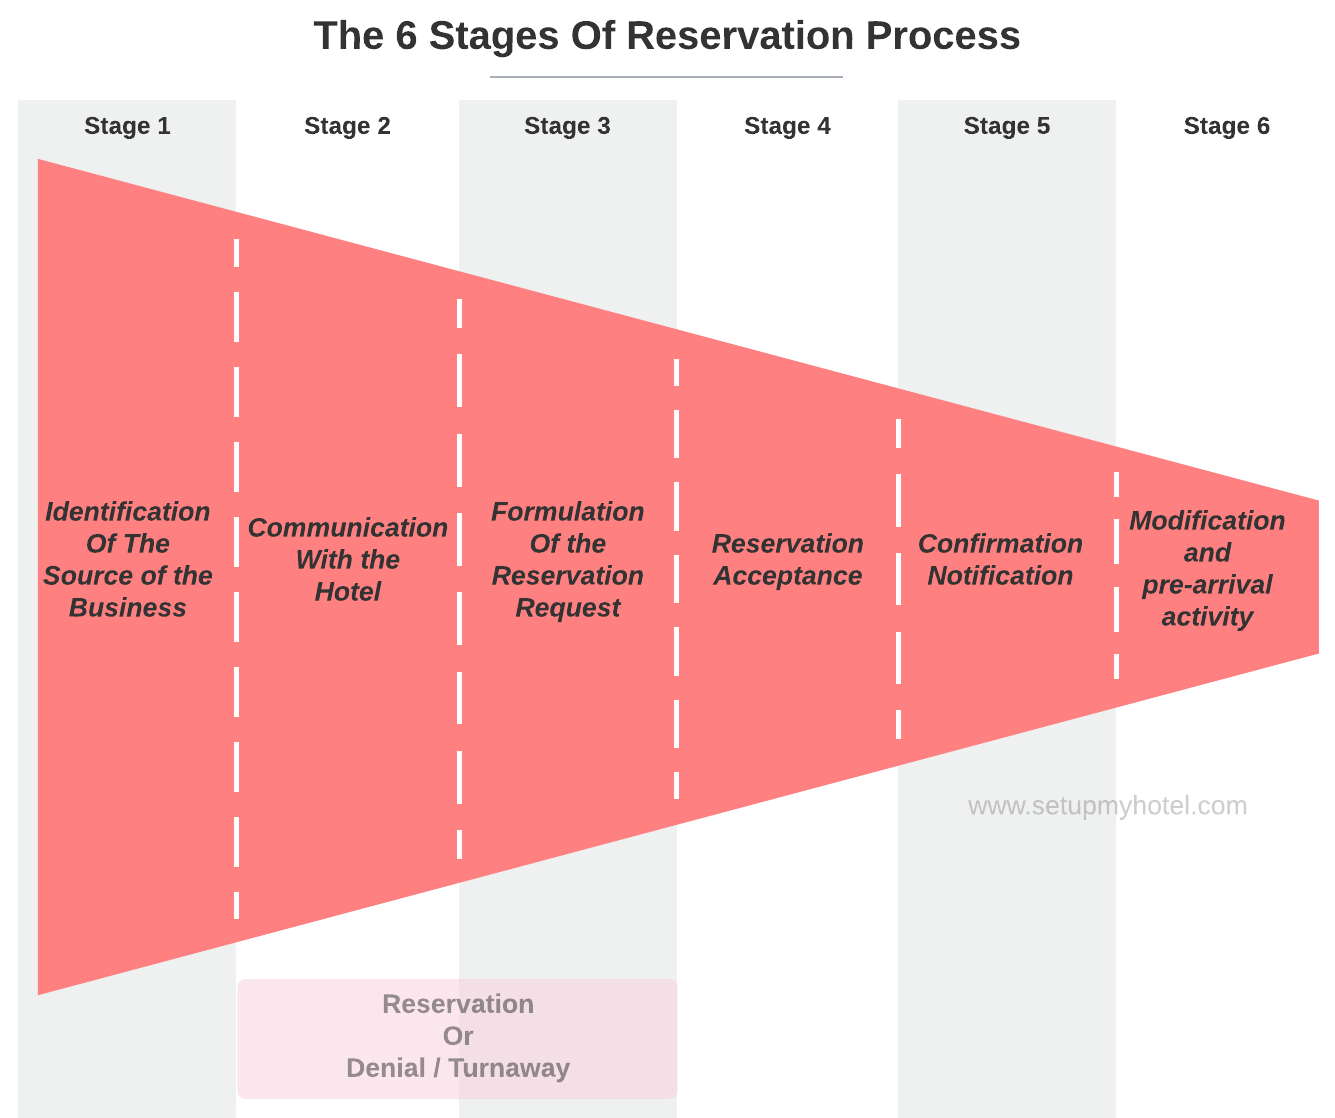 Stages of Reservation Process Chart | The Flow Of Reservation Process in Hotels, Resorts